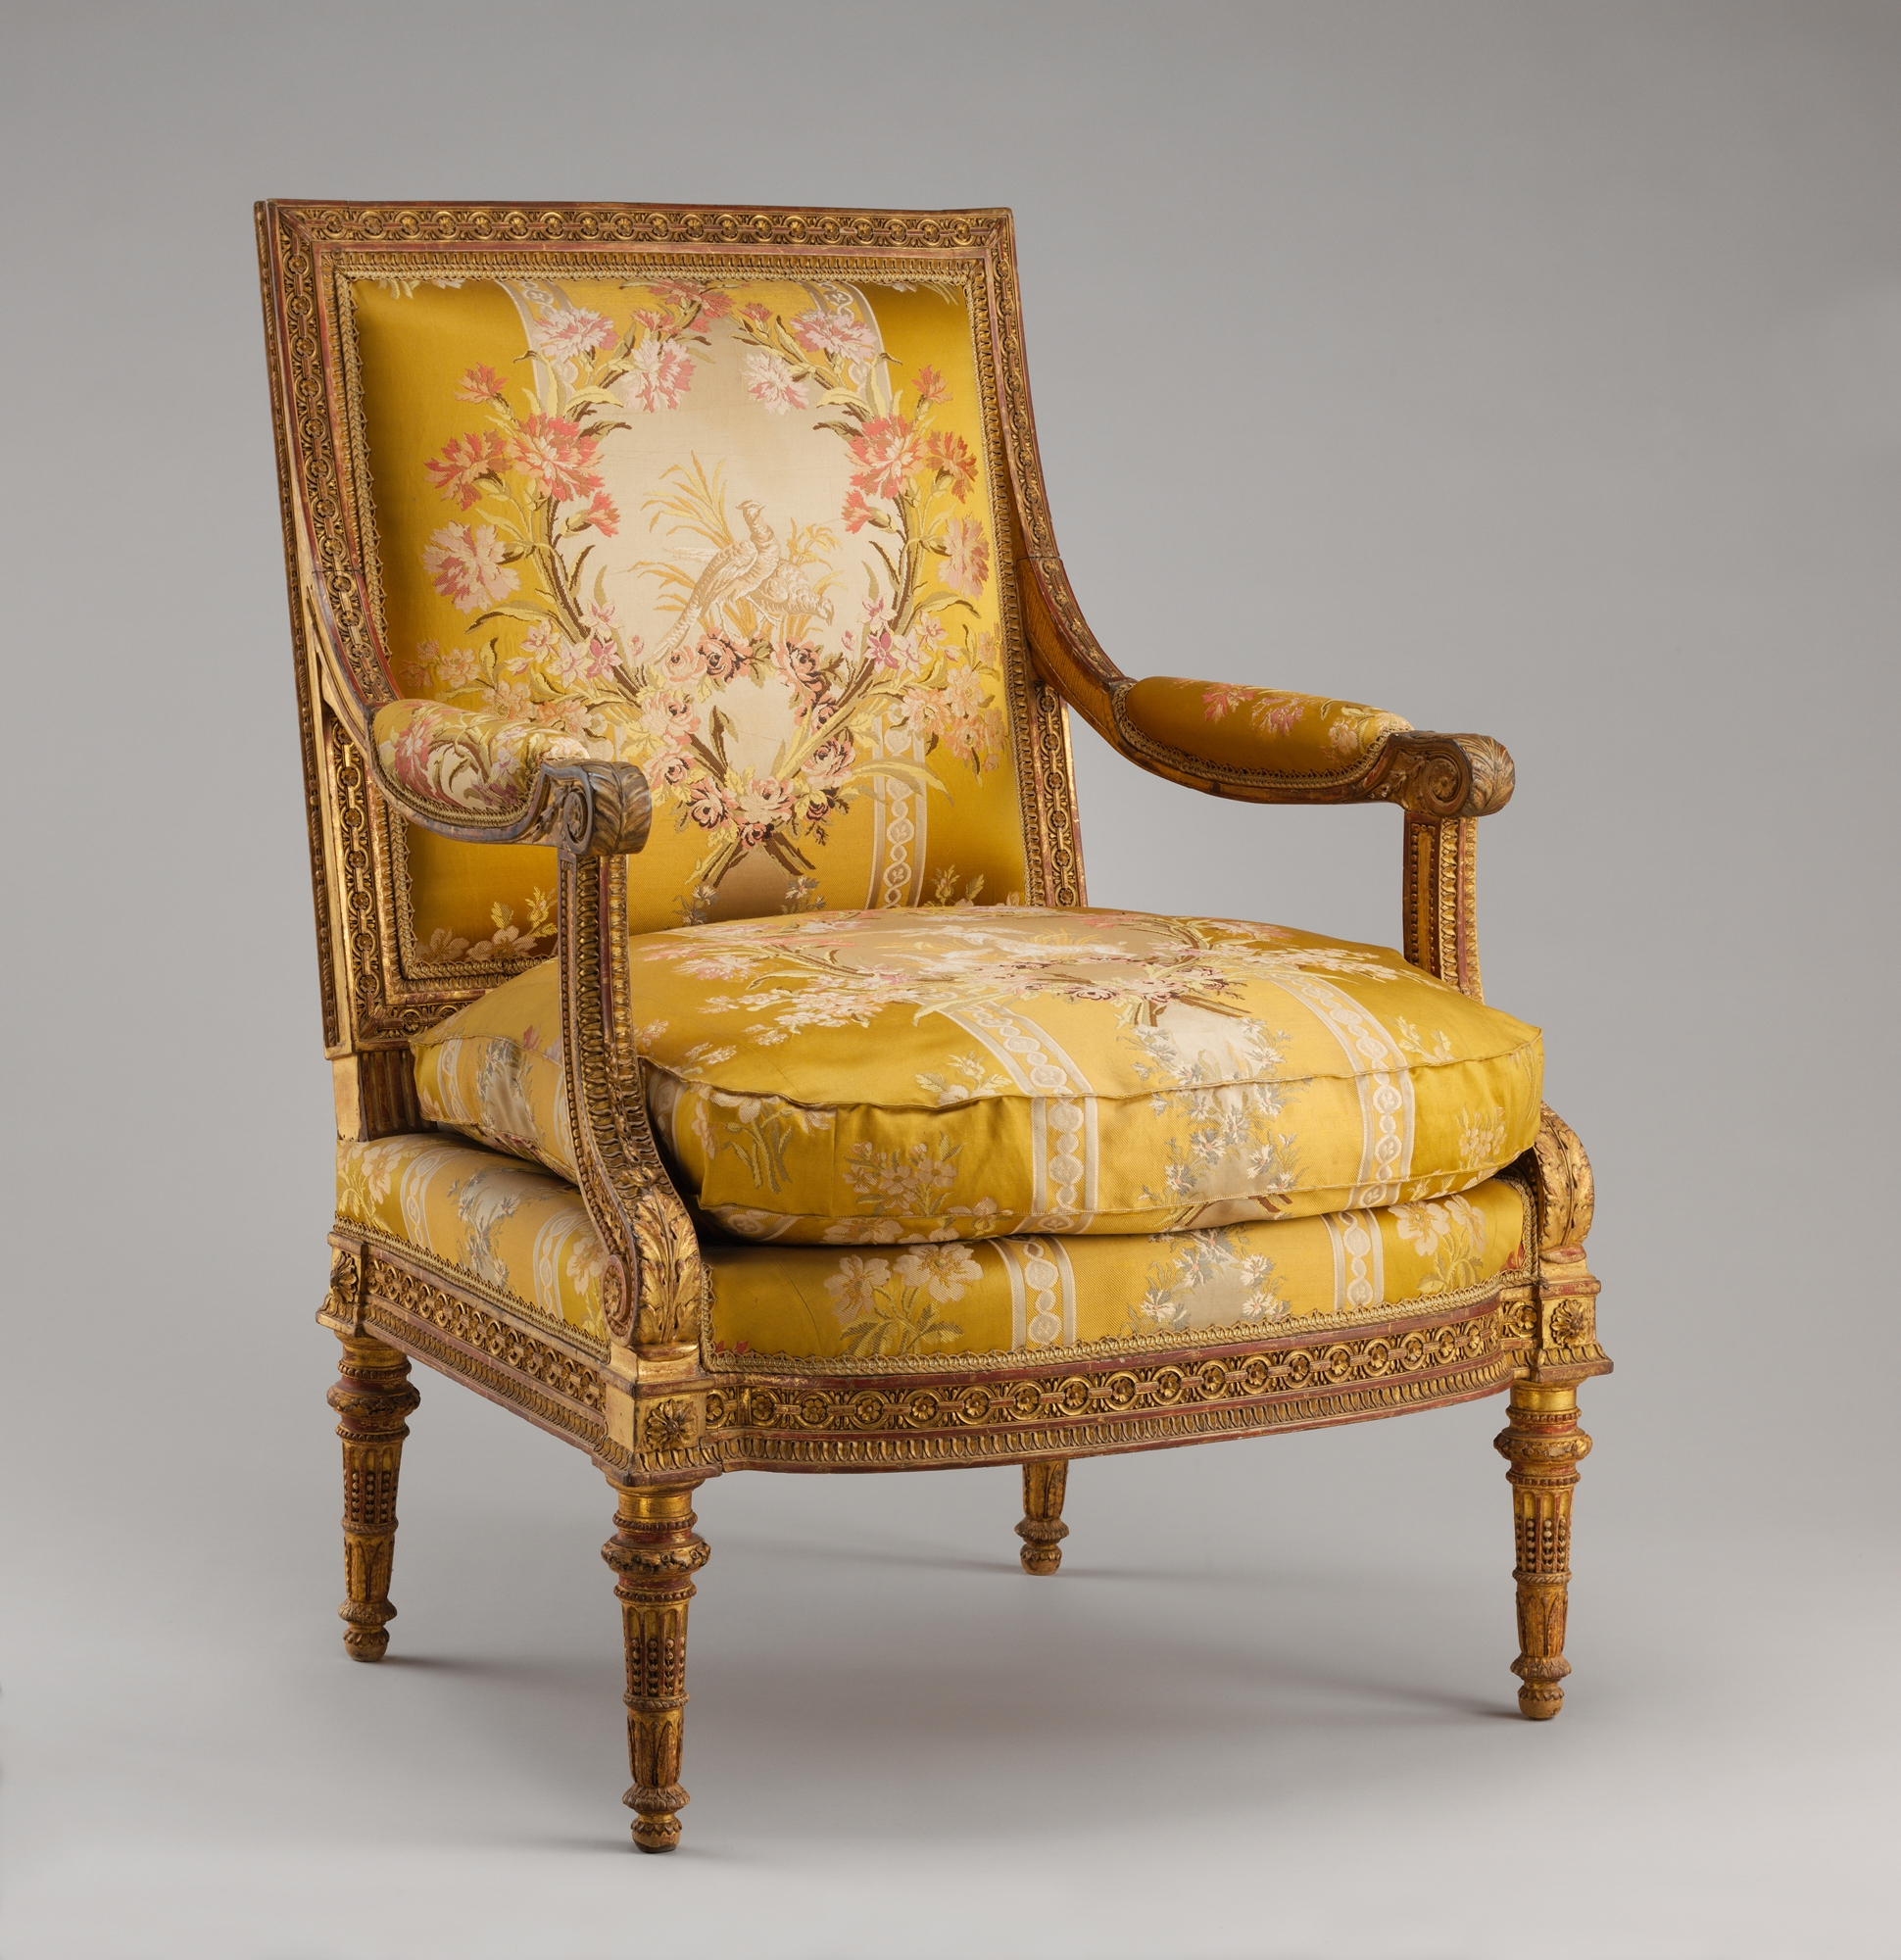 Armchair Fauteuil à La Reine French Paris The Met - Fauteuil louis xiv